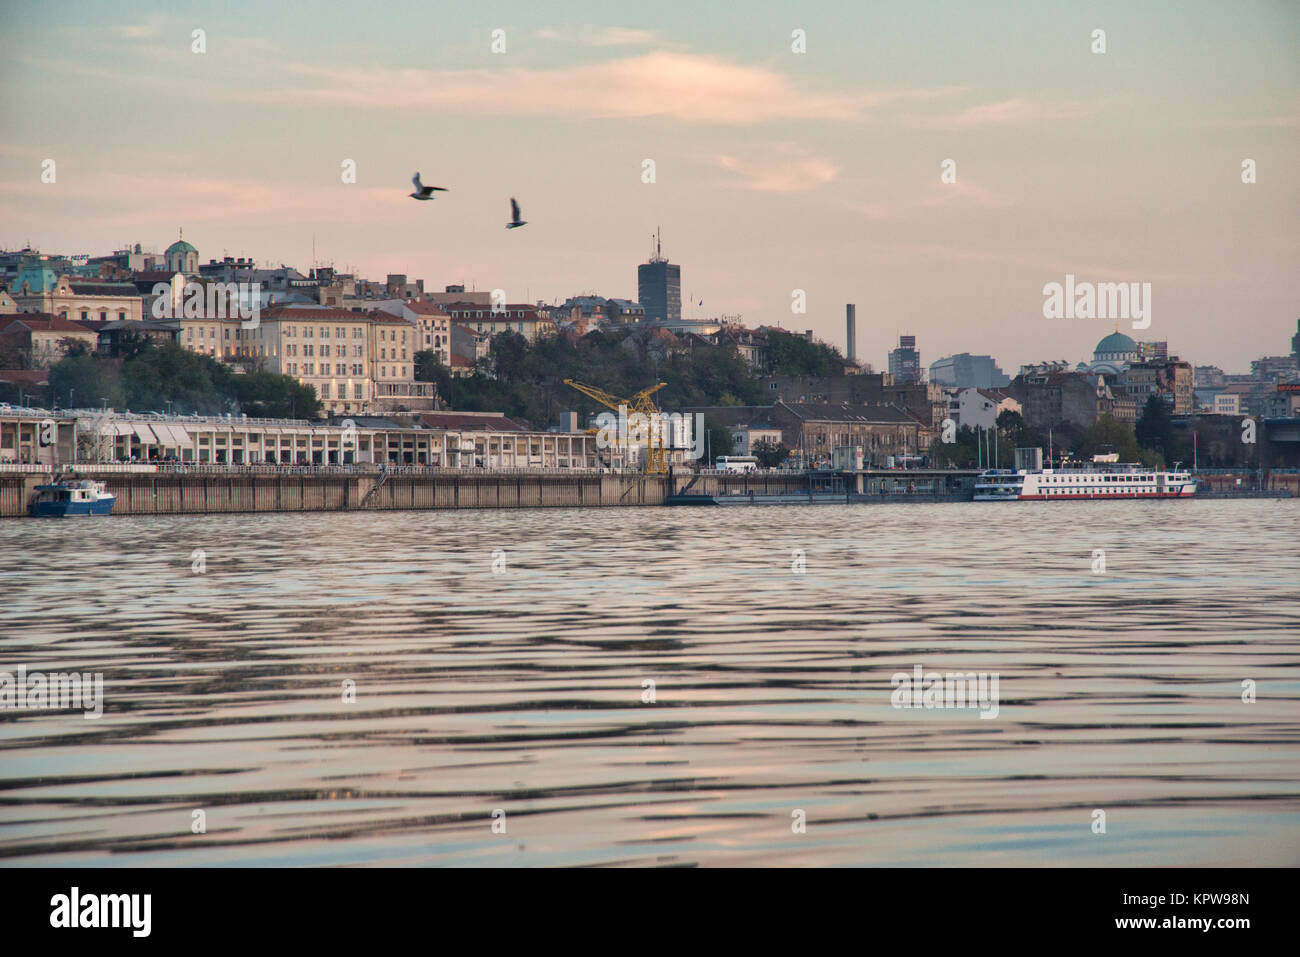 the river Danube with the inner city of Belgrade, Serbia - Stock Image